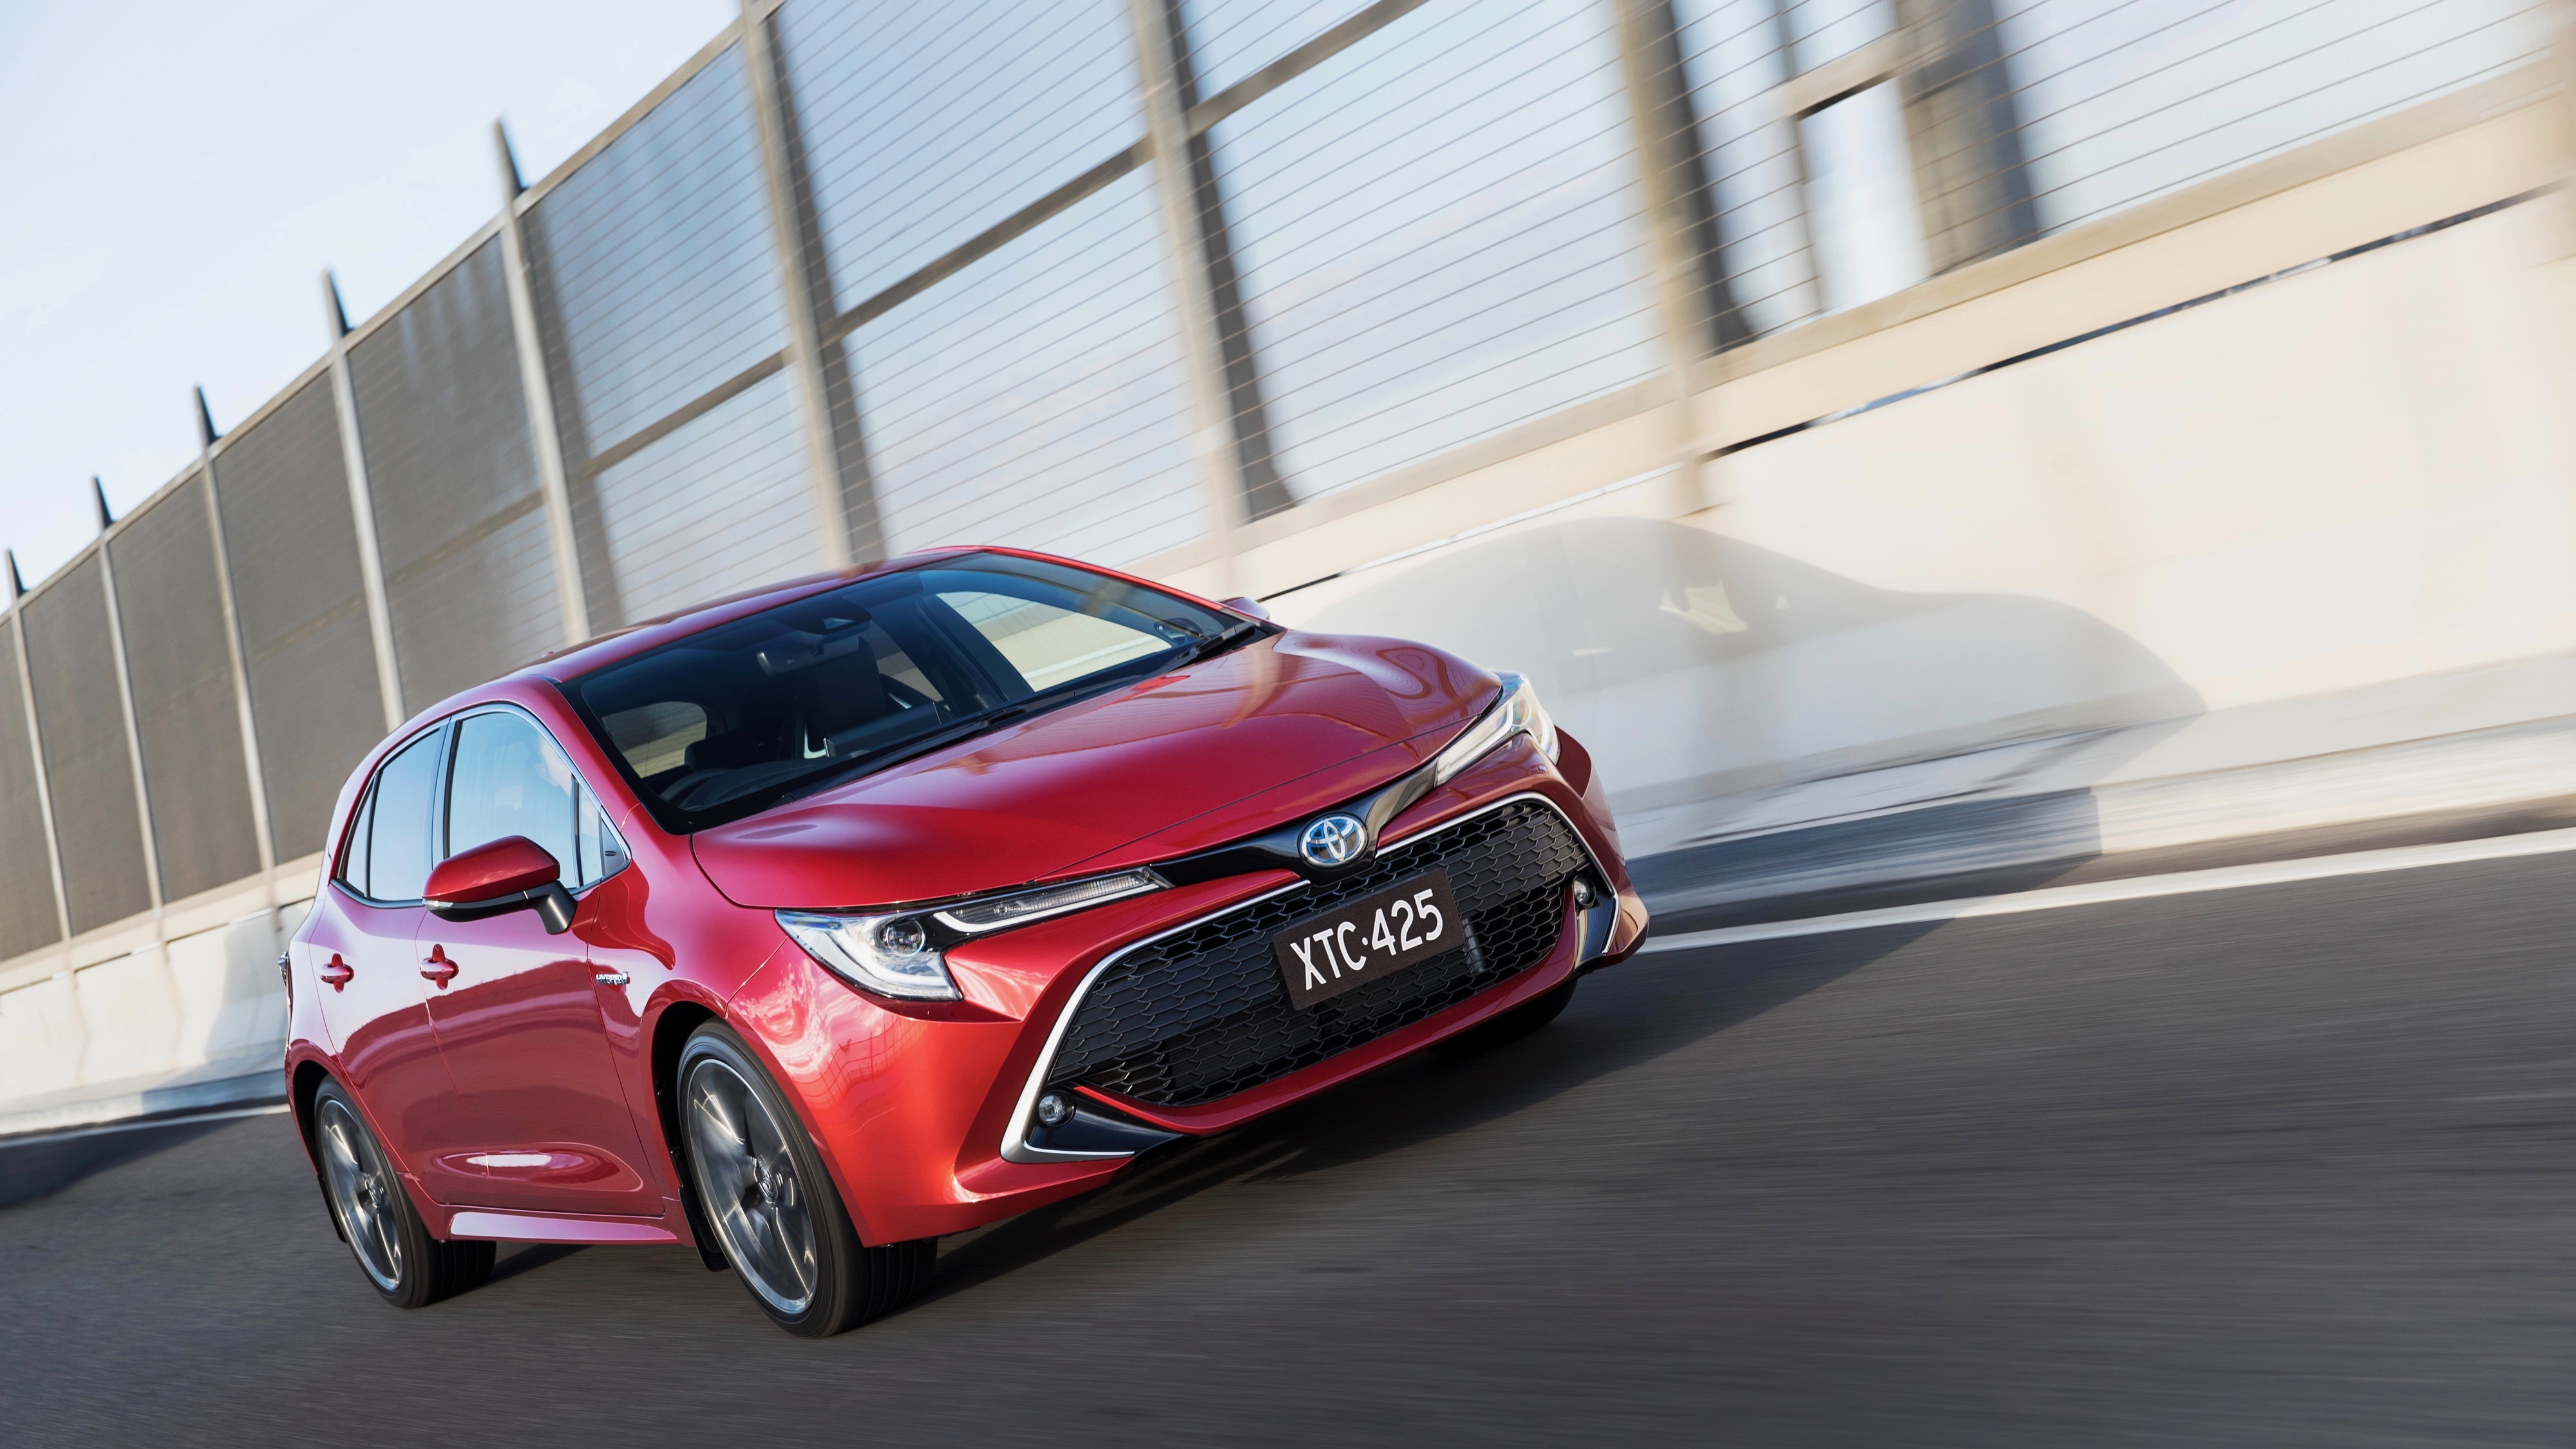 2019 Toyota Corolla ZR hybrid Volcanic Red front 3/4 driving